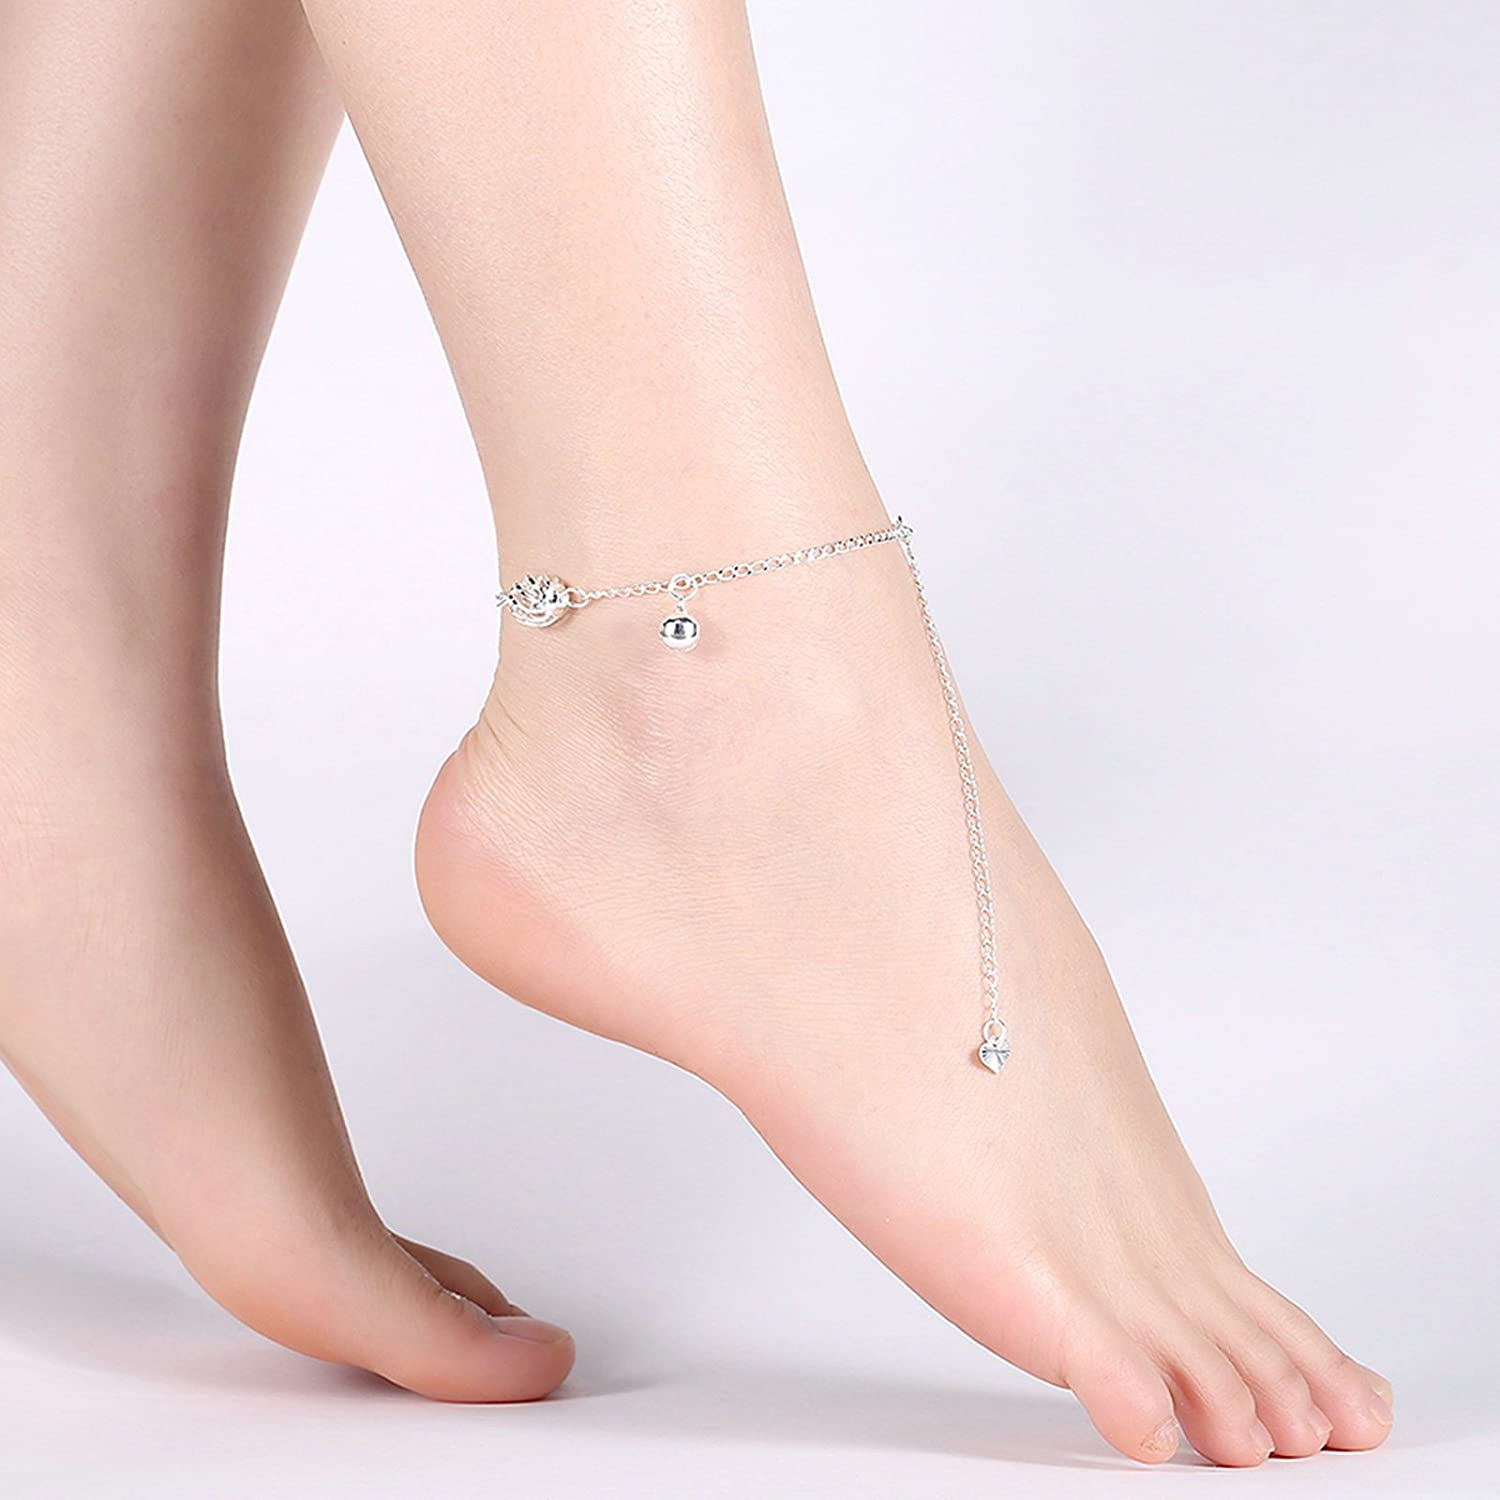 Bishilin Foot Anklet Jewelry Curb Bells Ball anklet extender 20 CM